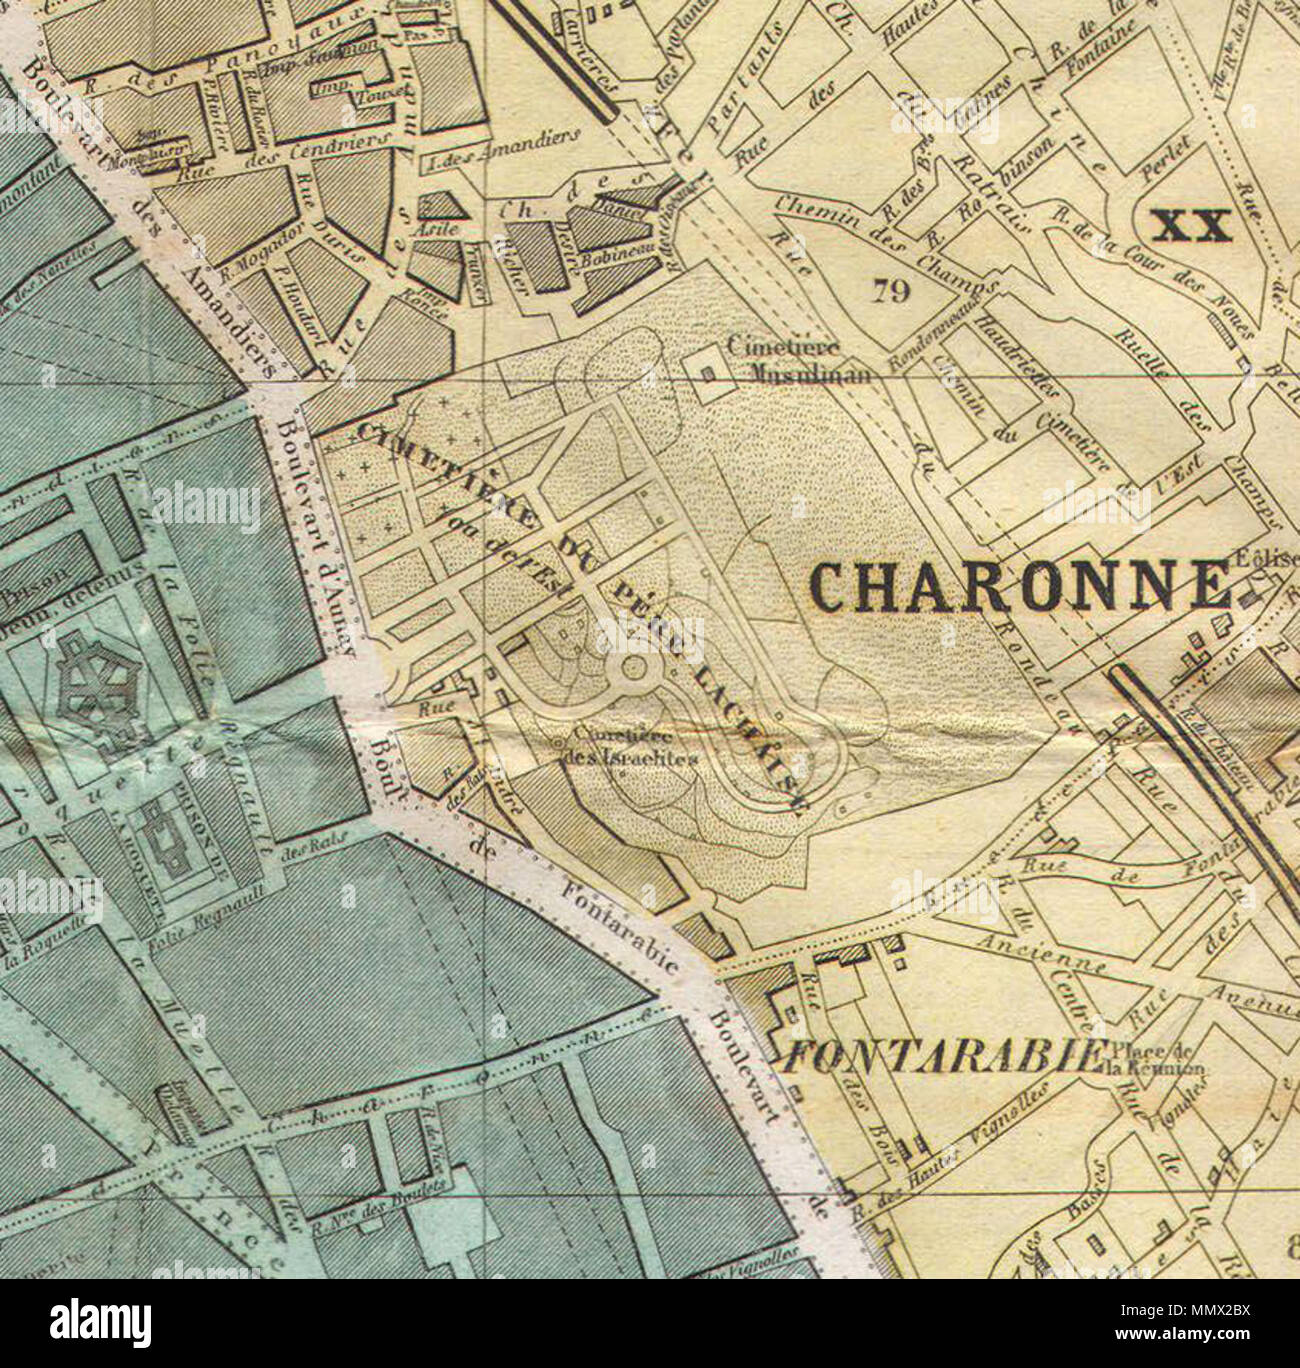 English: Detail showing the Charonne quarter and the Père